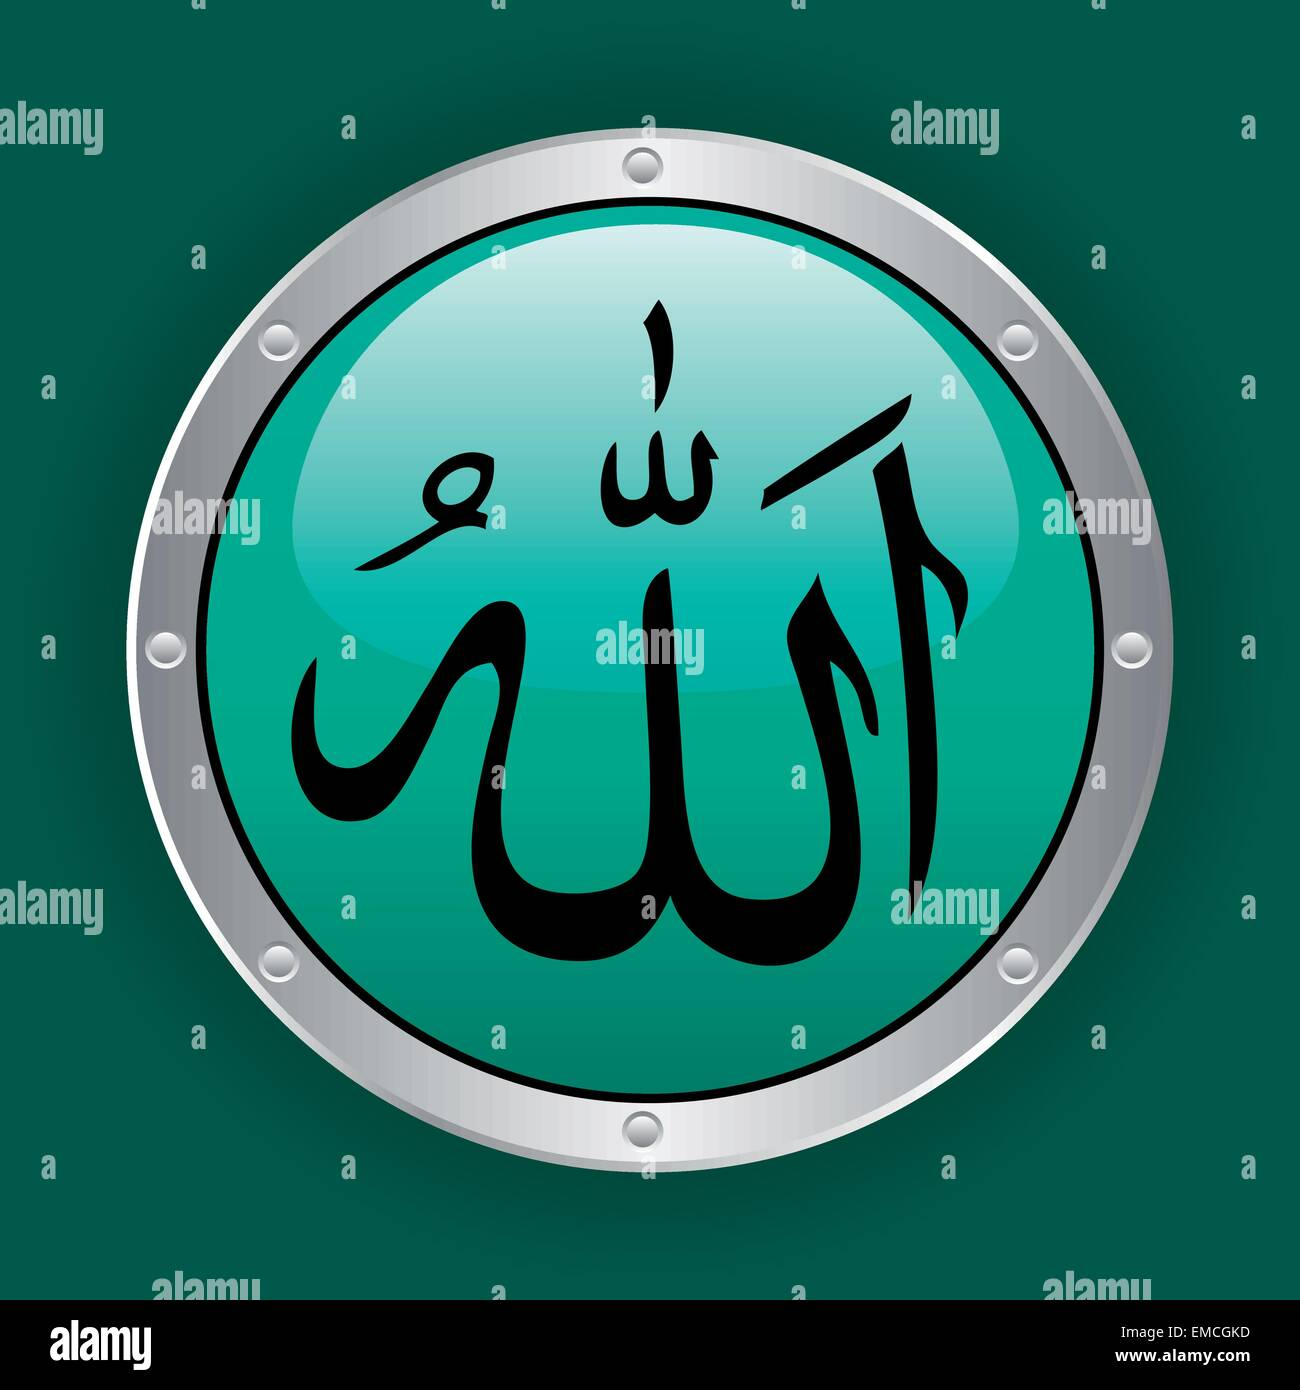 Allah Name Stock Photos & Allah Name Stock Images - Alamy